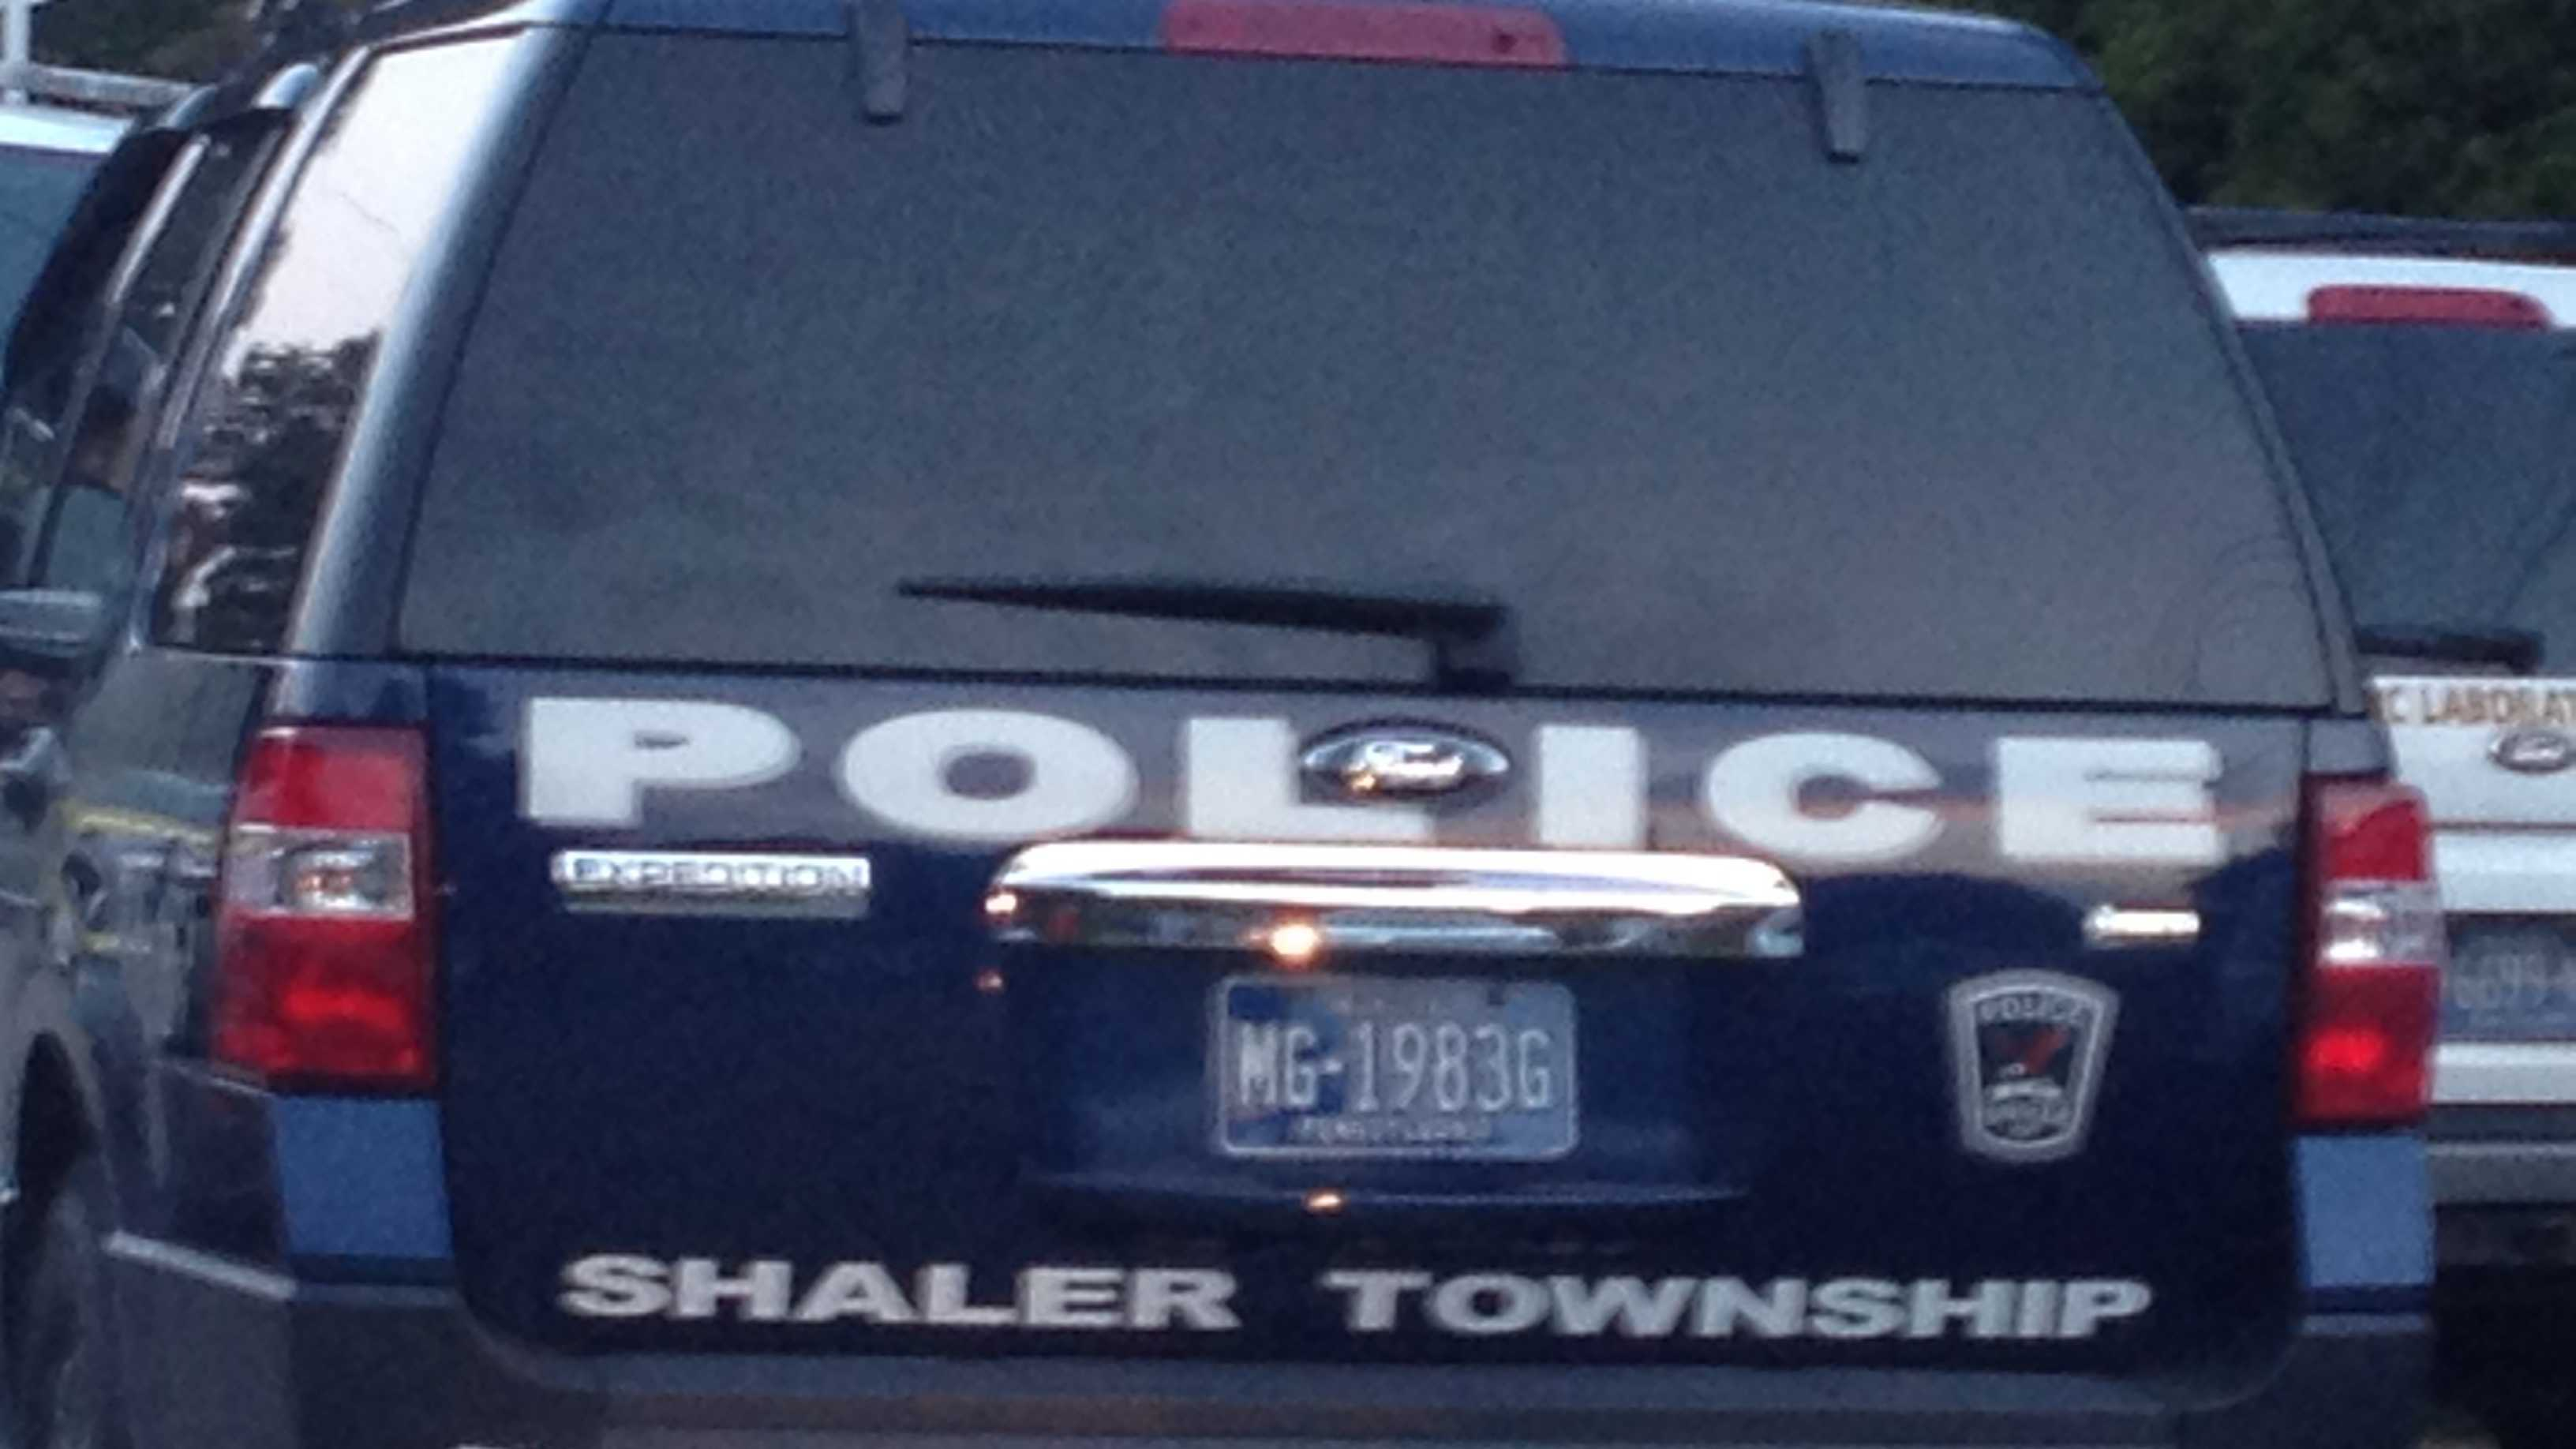 A Shaler Township police vehicle.